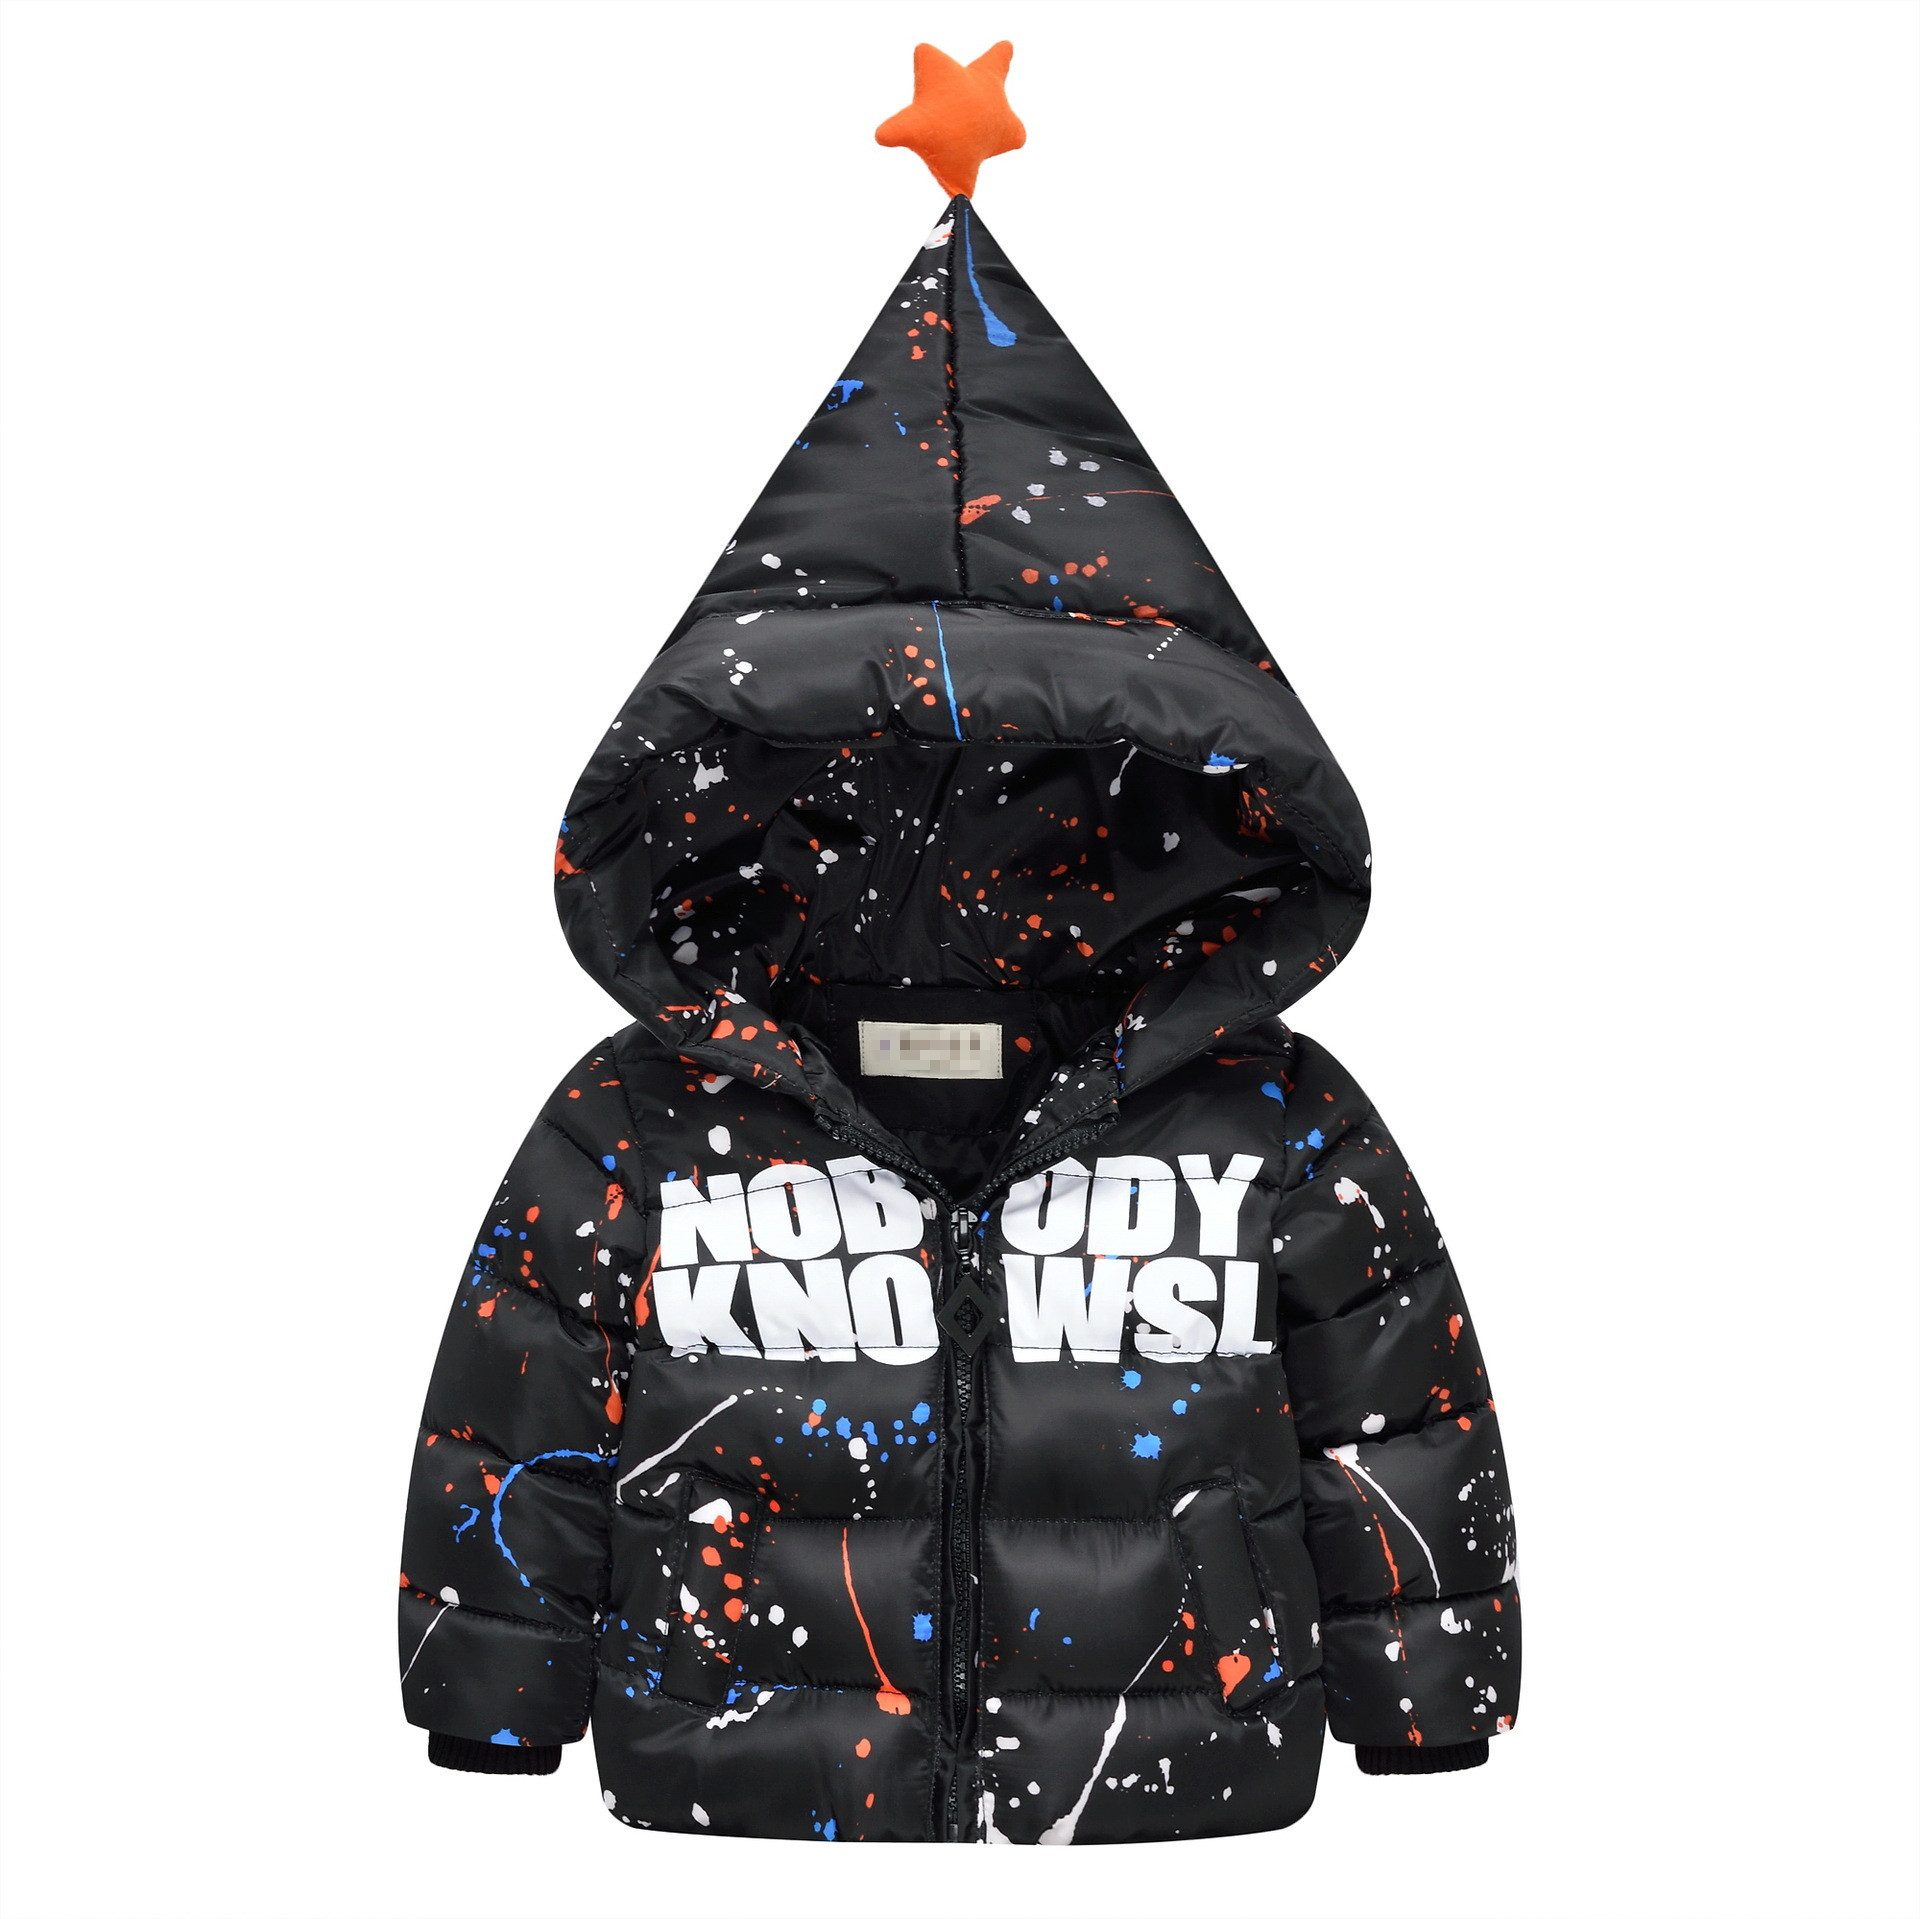 kids Jacket winter coat Children's cute outerwear winter style baby Goys and Girls Warm parka Coat Clothes for 9M-4T